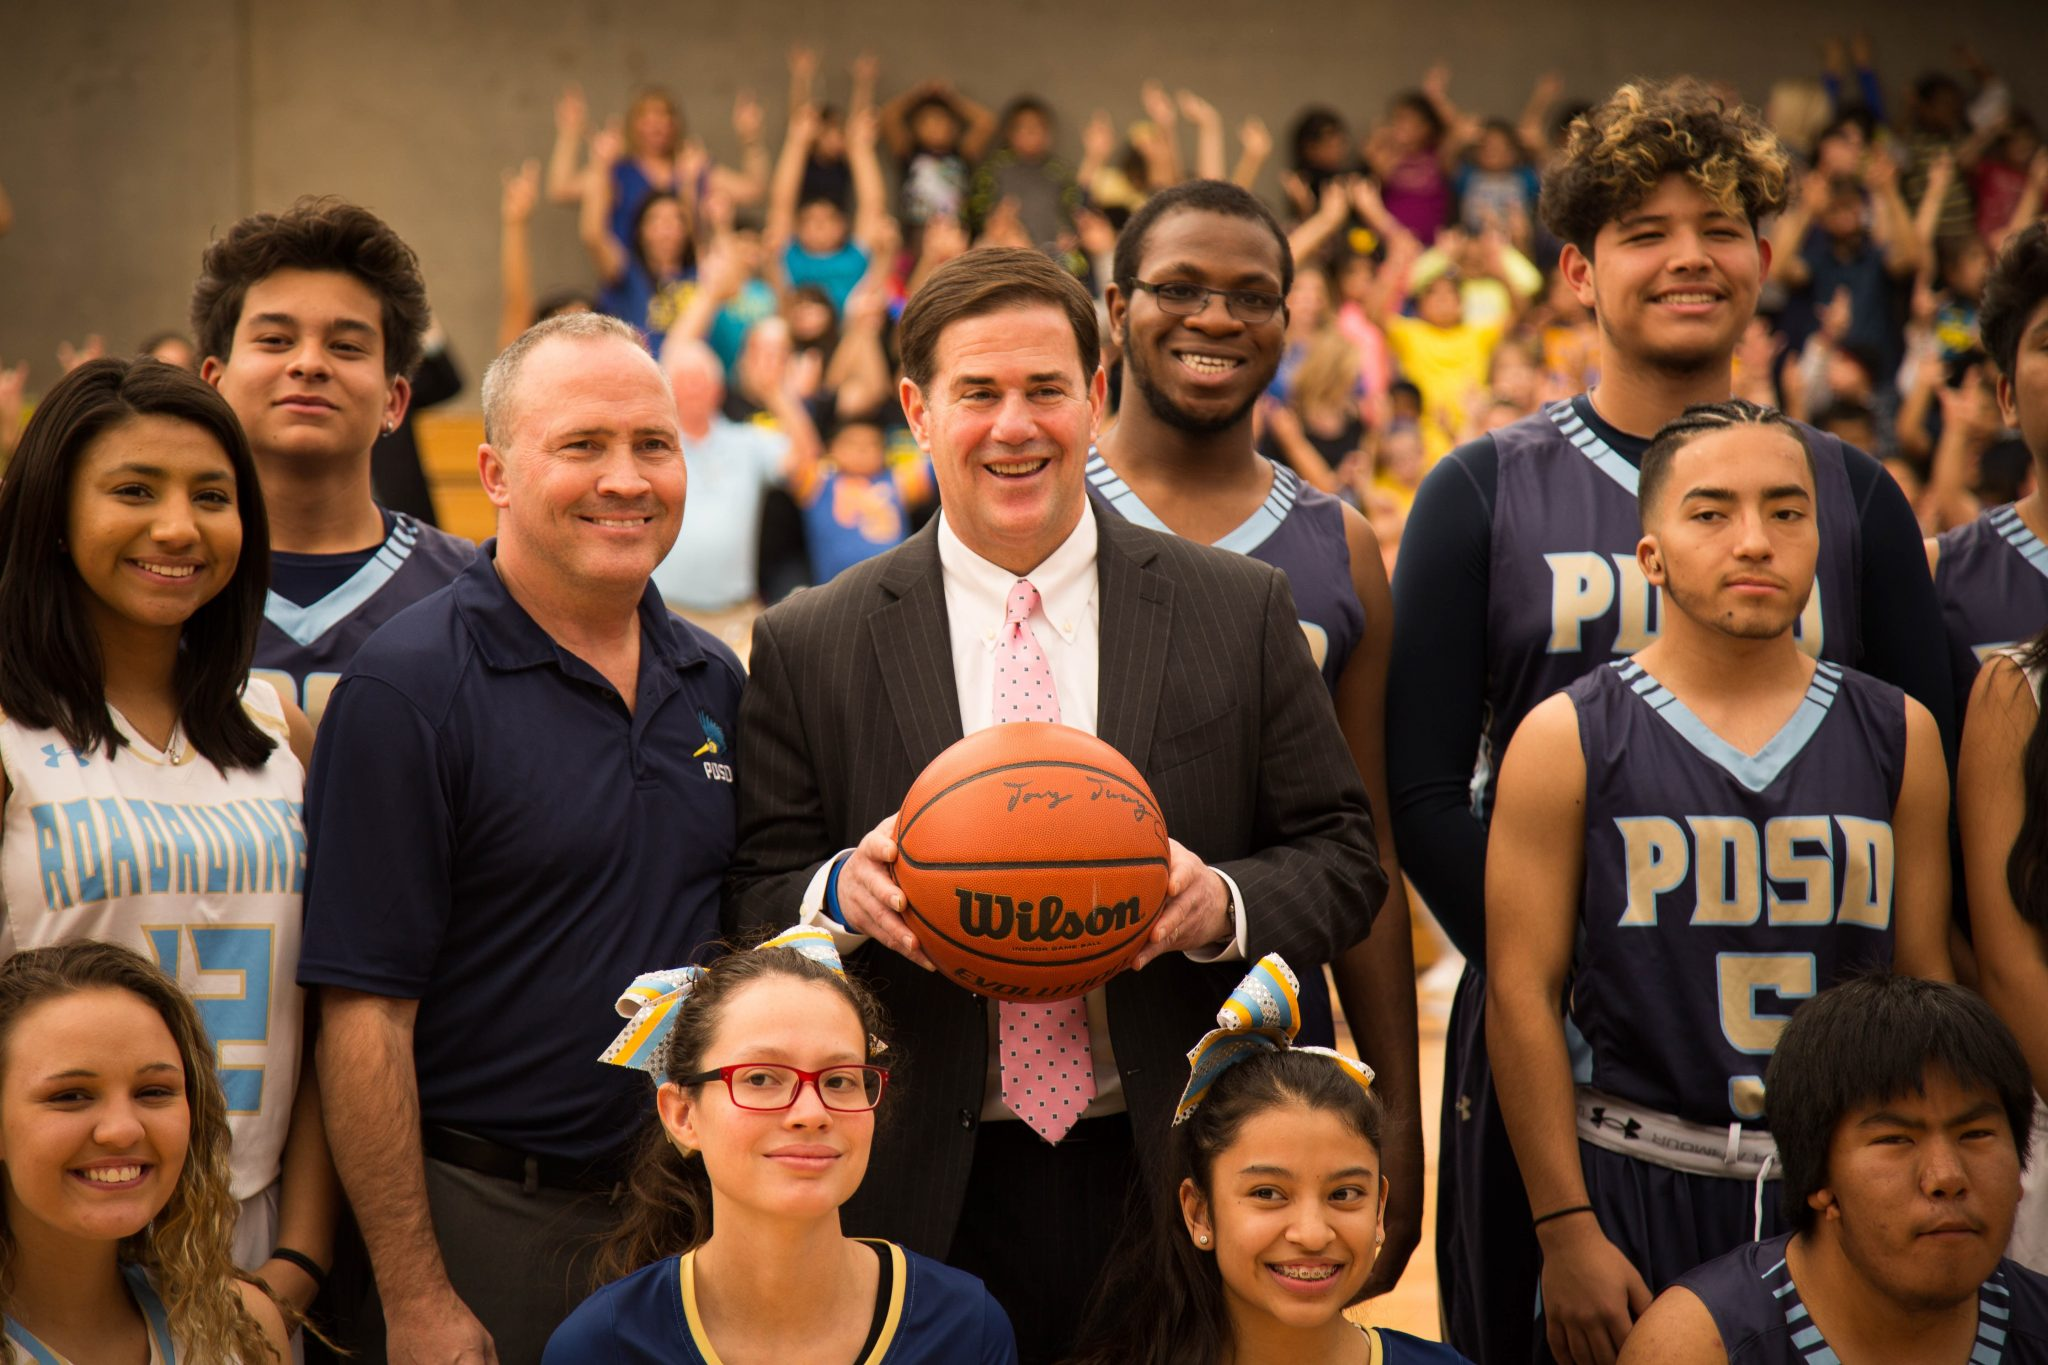 Governor Ducey Visits PDSD